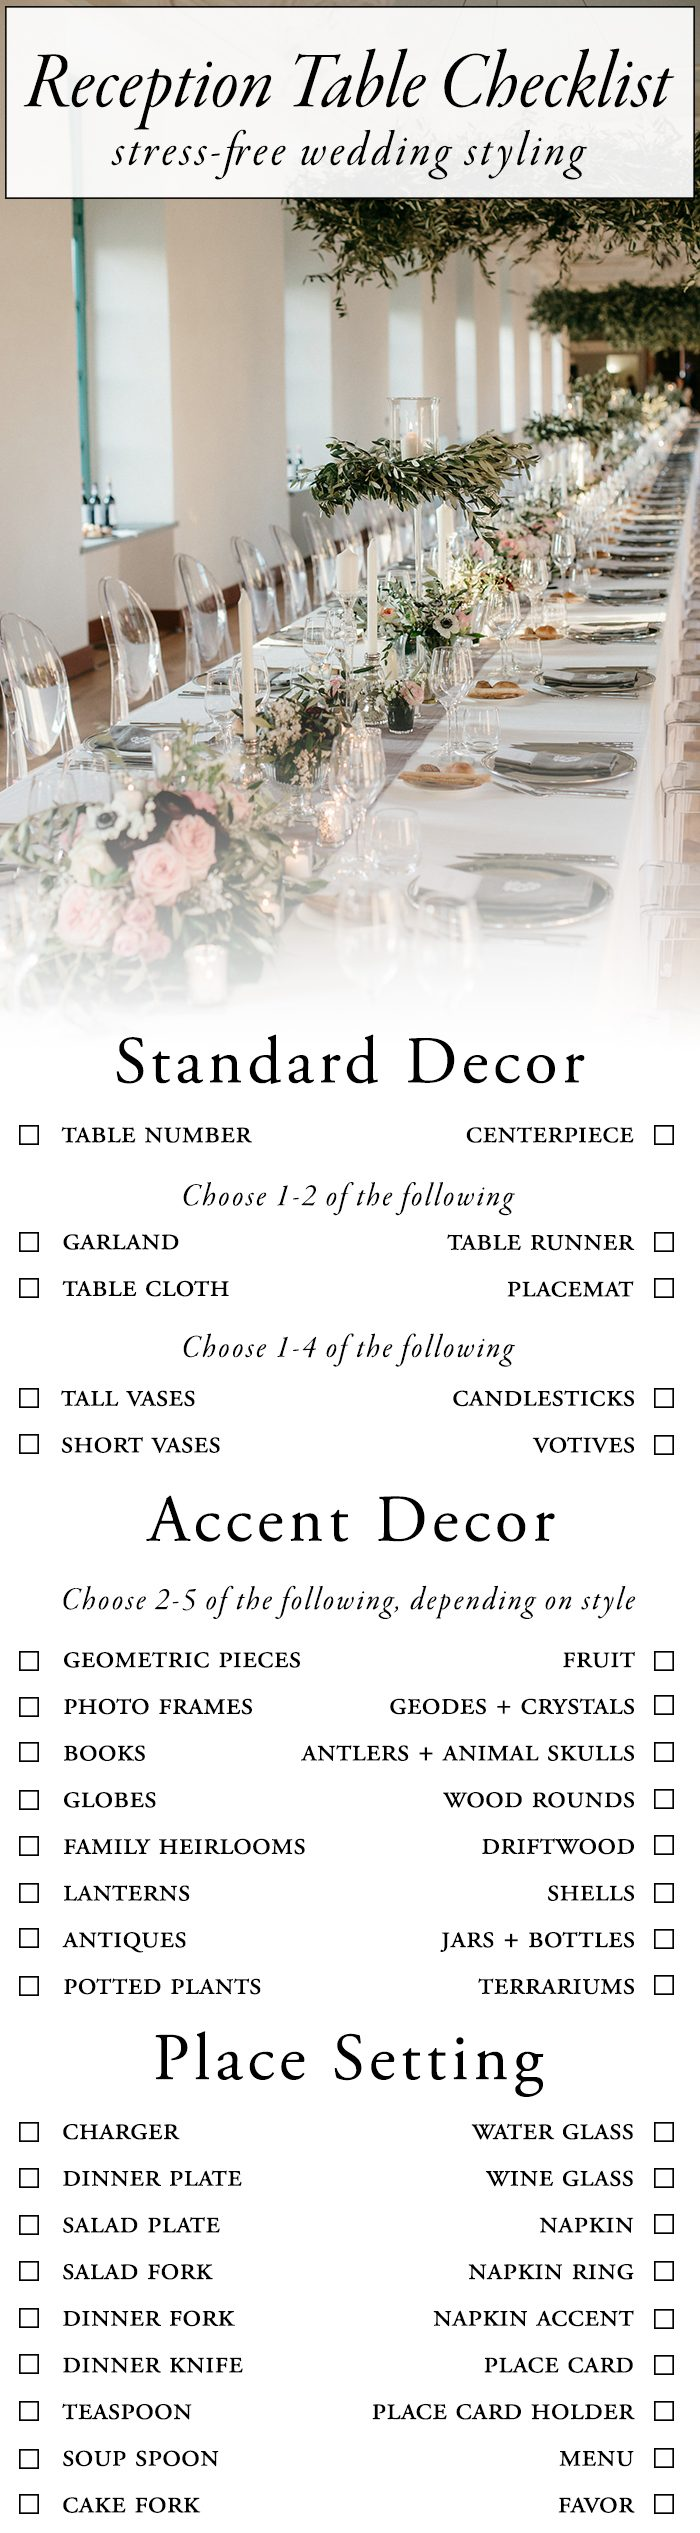 Use This Wedding Reception Table Checklist For Stress Free Styling Junebug Weddings